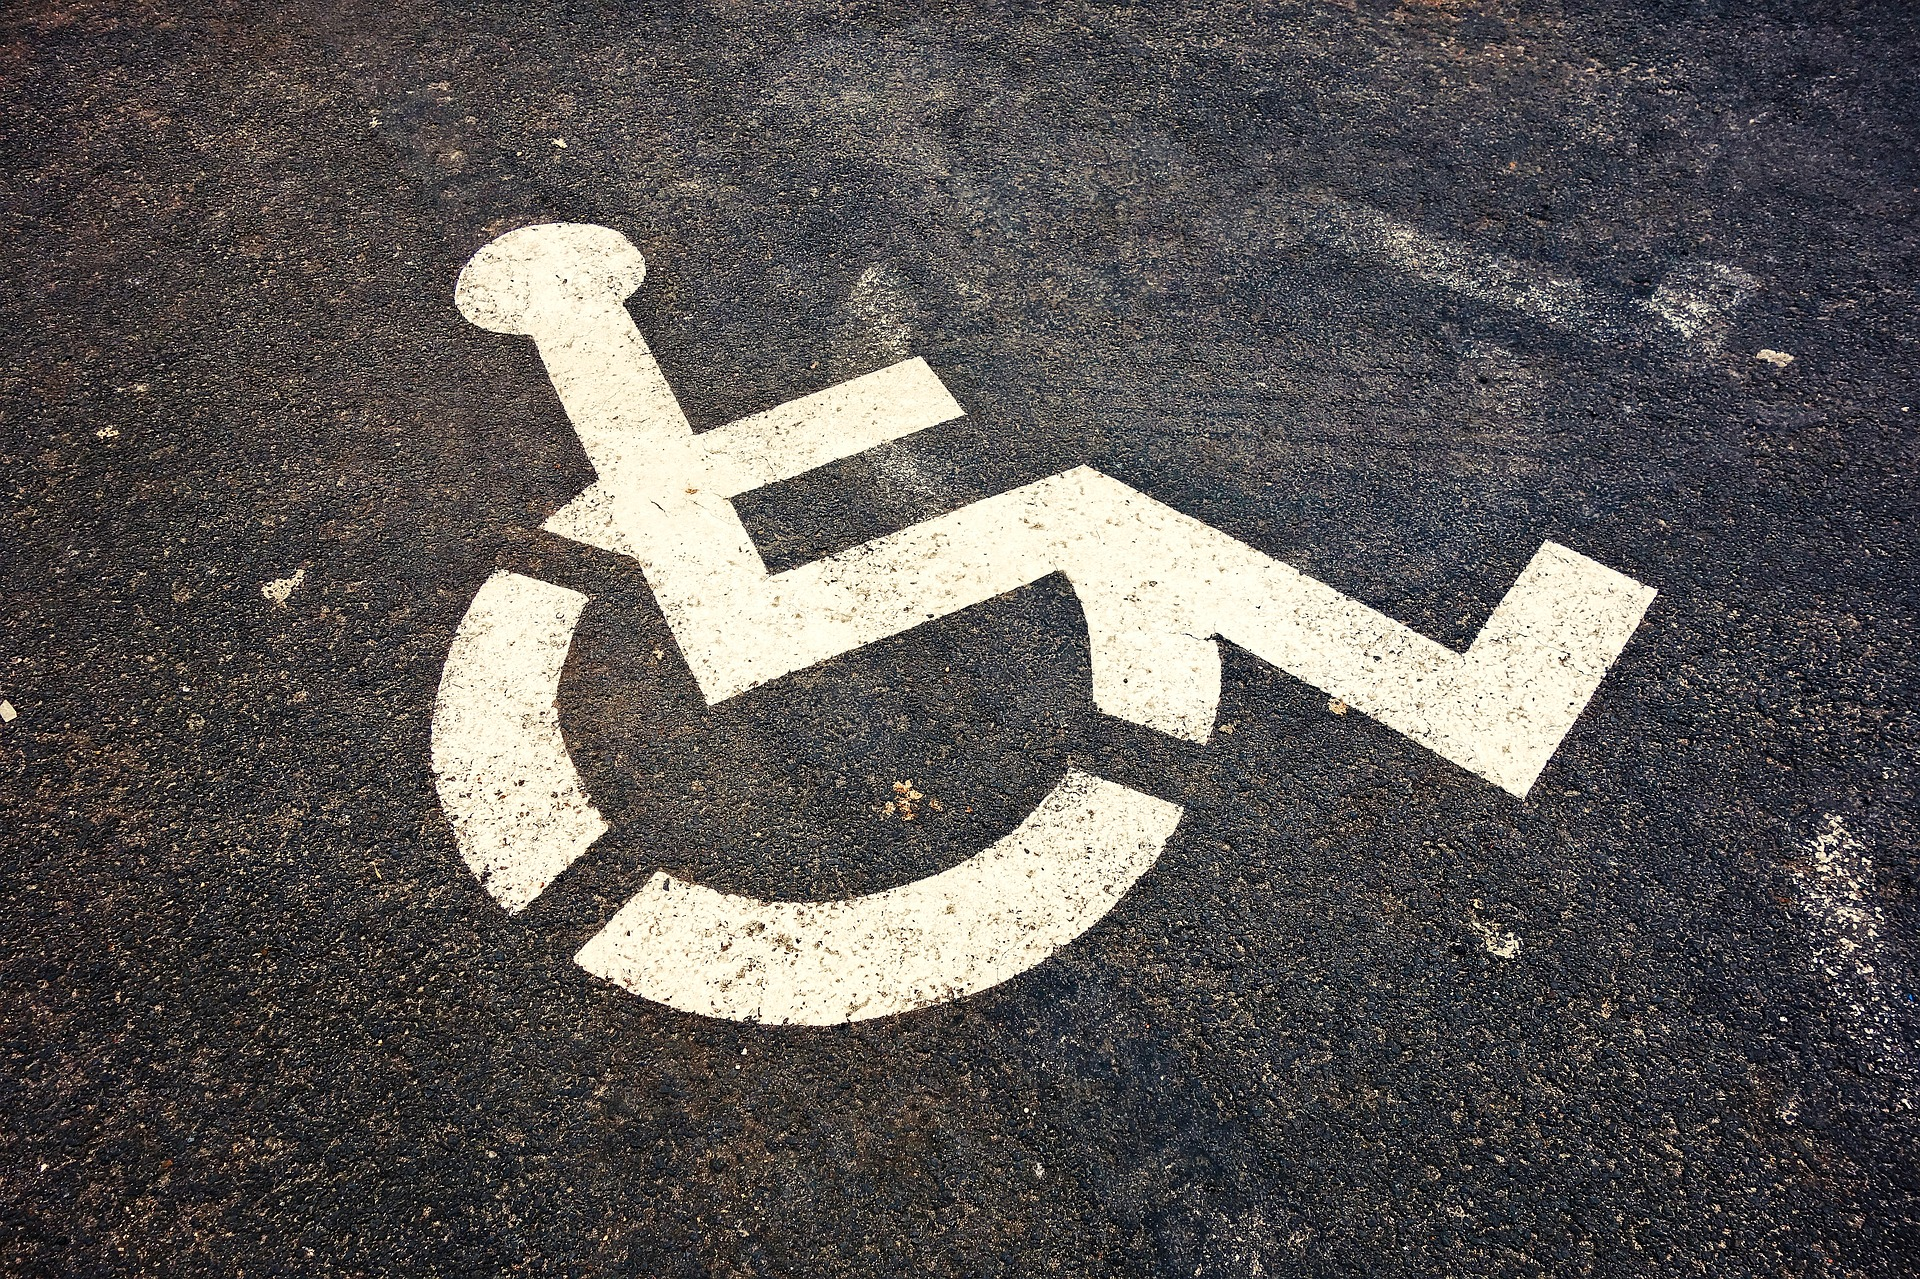 White Wheelchair Graphic on Black Asphalt